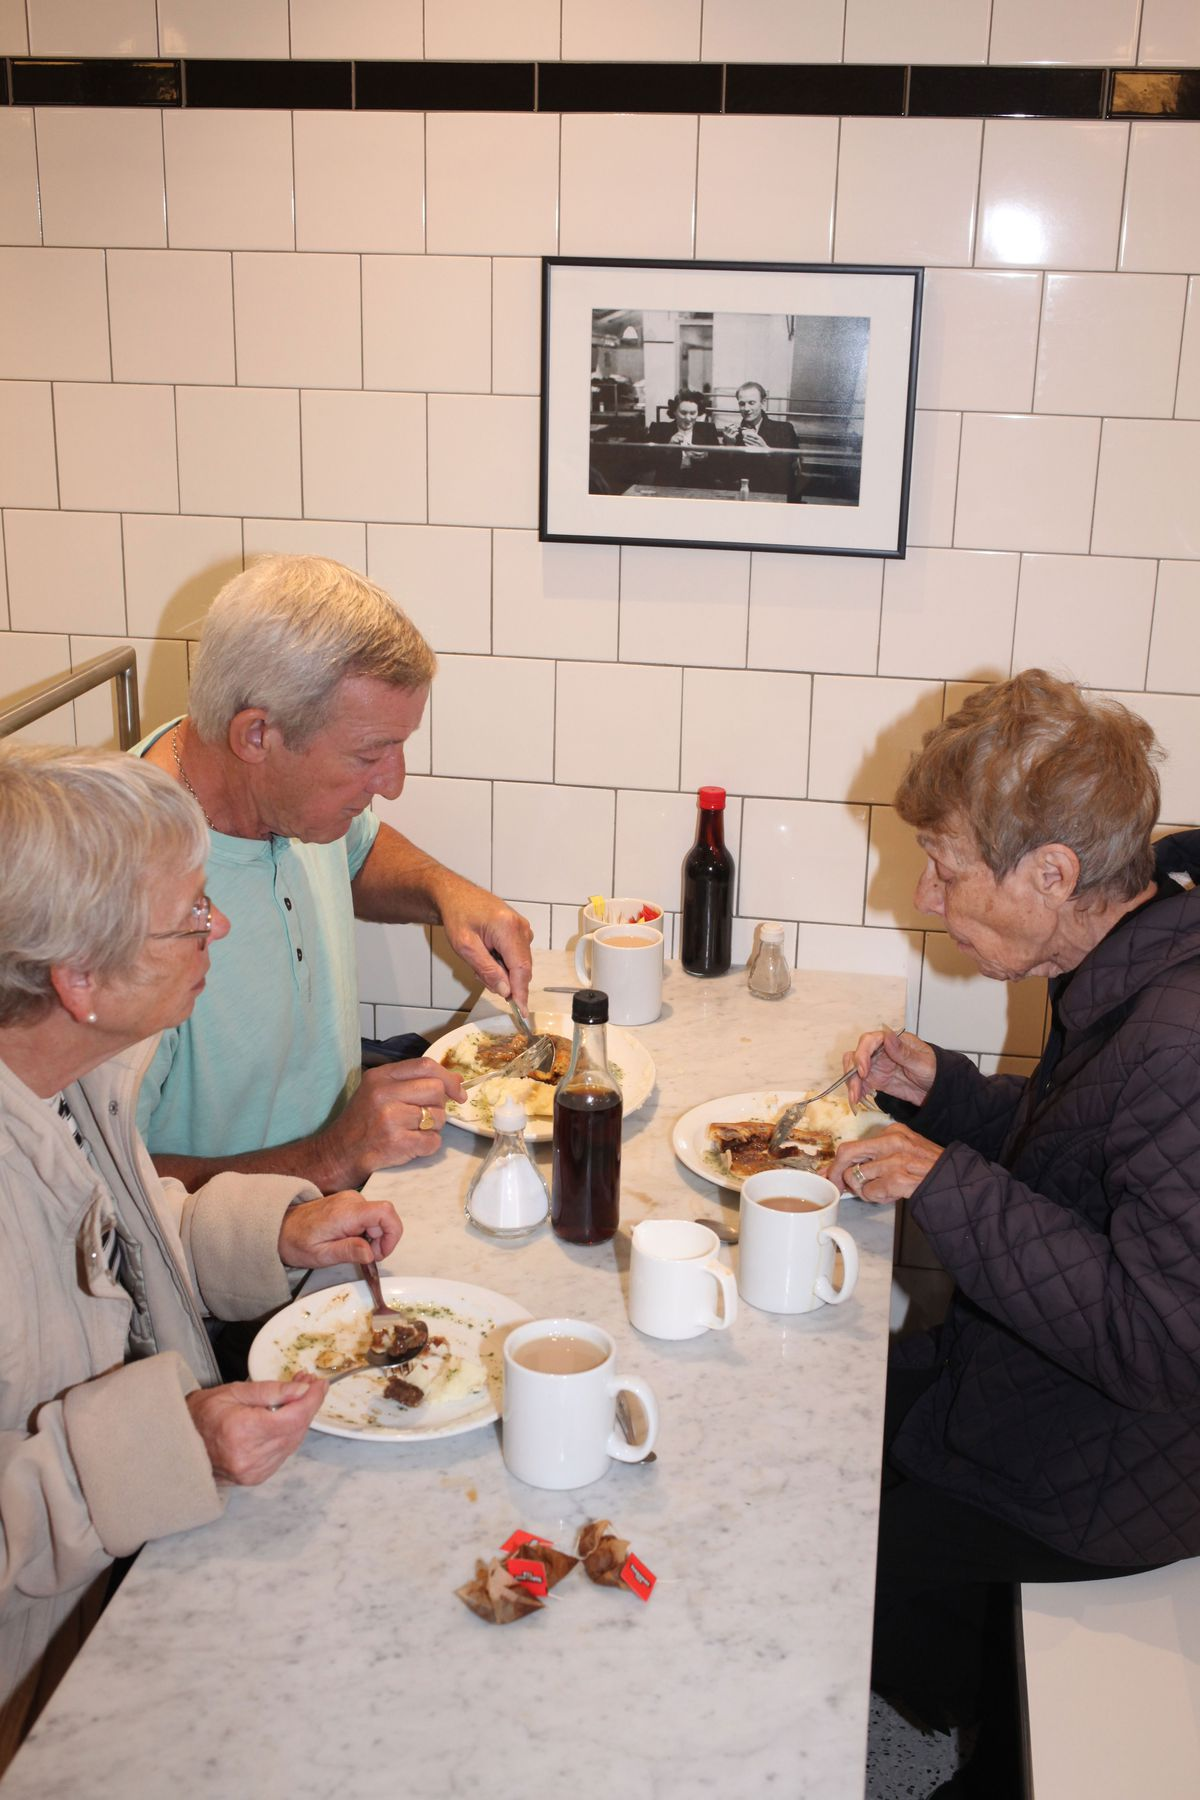 Customers eating pie and mash at G.Kelly on Roman Road, east London